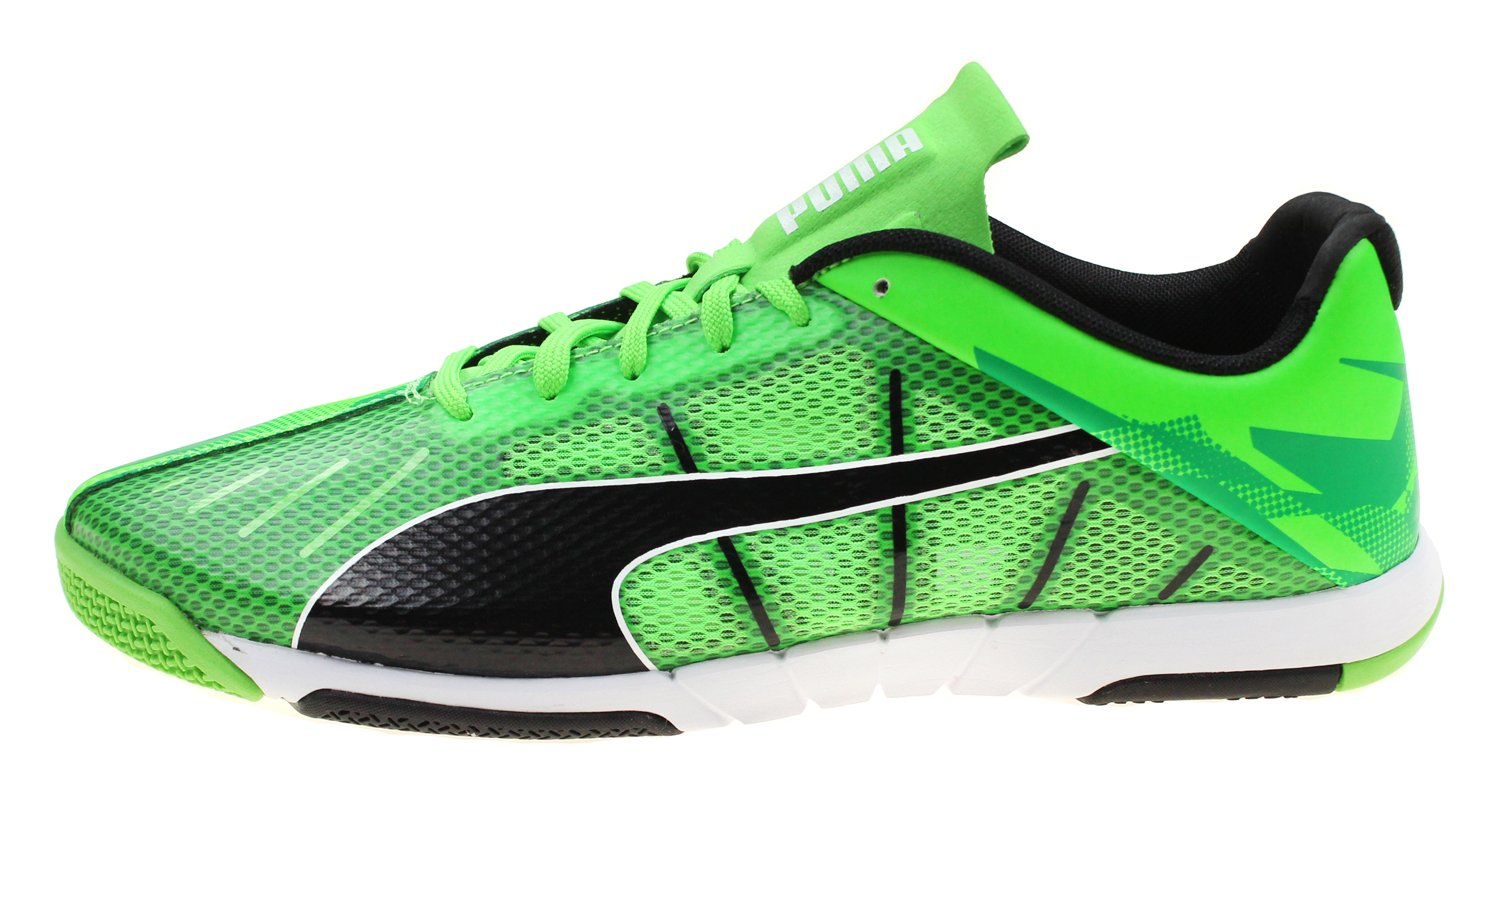 c795f1a06 ... Puma Men s Green Black White and Youth Big Boys 19056 Boys Neon Lite 2.0  Indoor ...